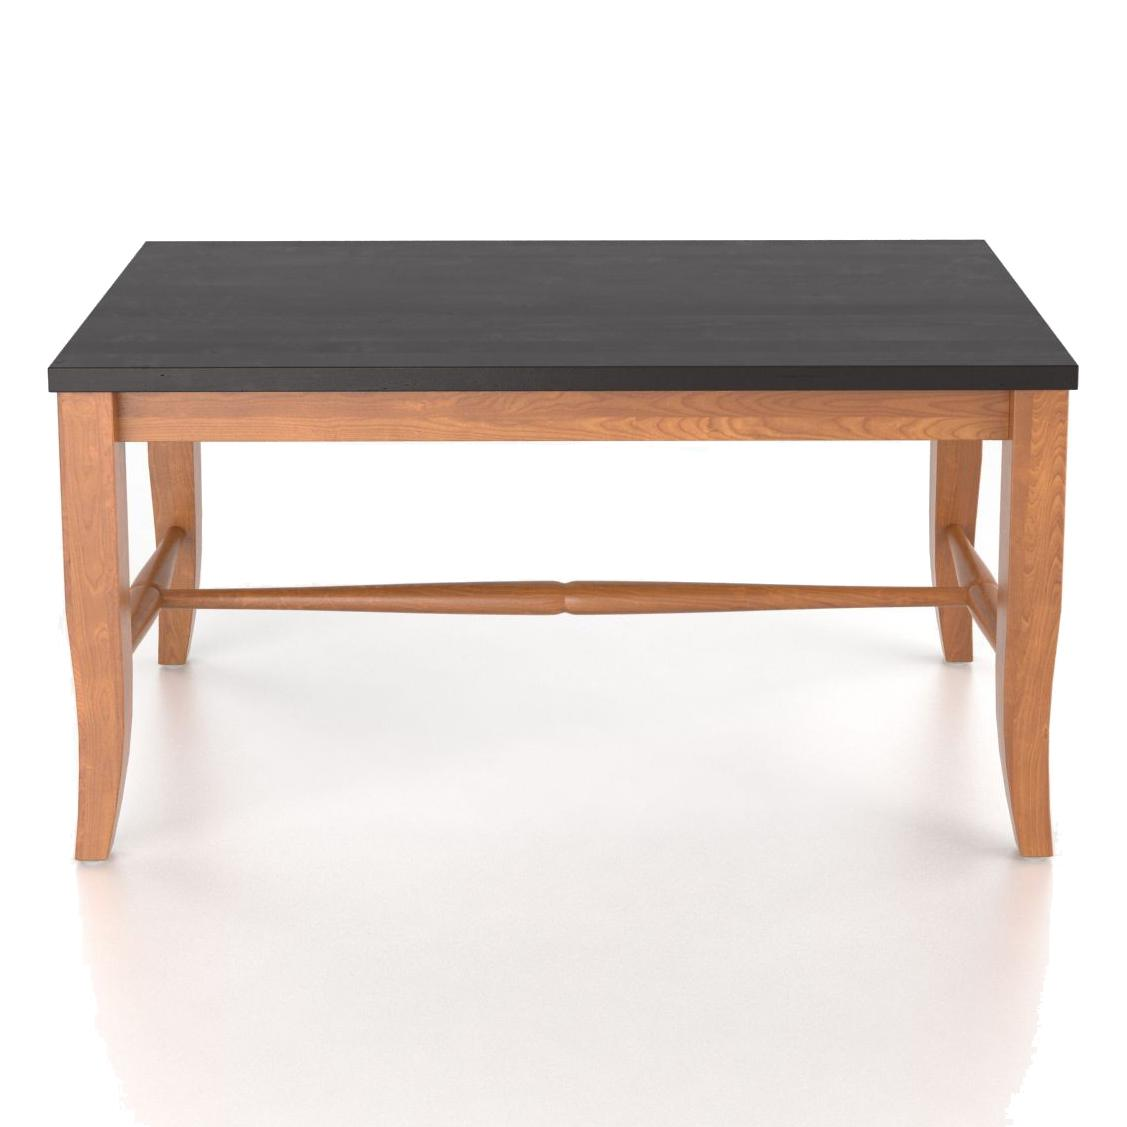 "Custom Dining <b>Customizable</b> Wooden Seat Bench, 18"" by Canadel at Furniture and ApplianceMart"